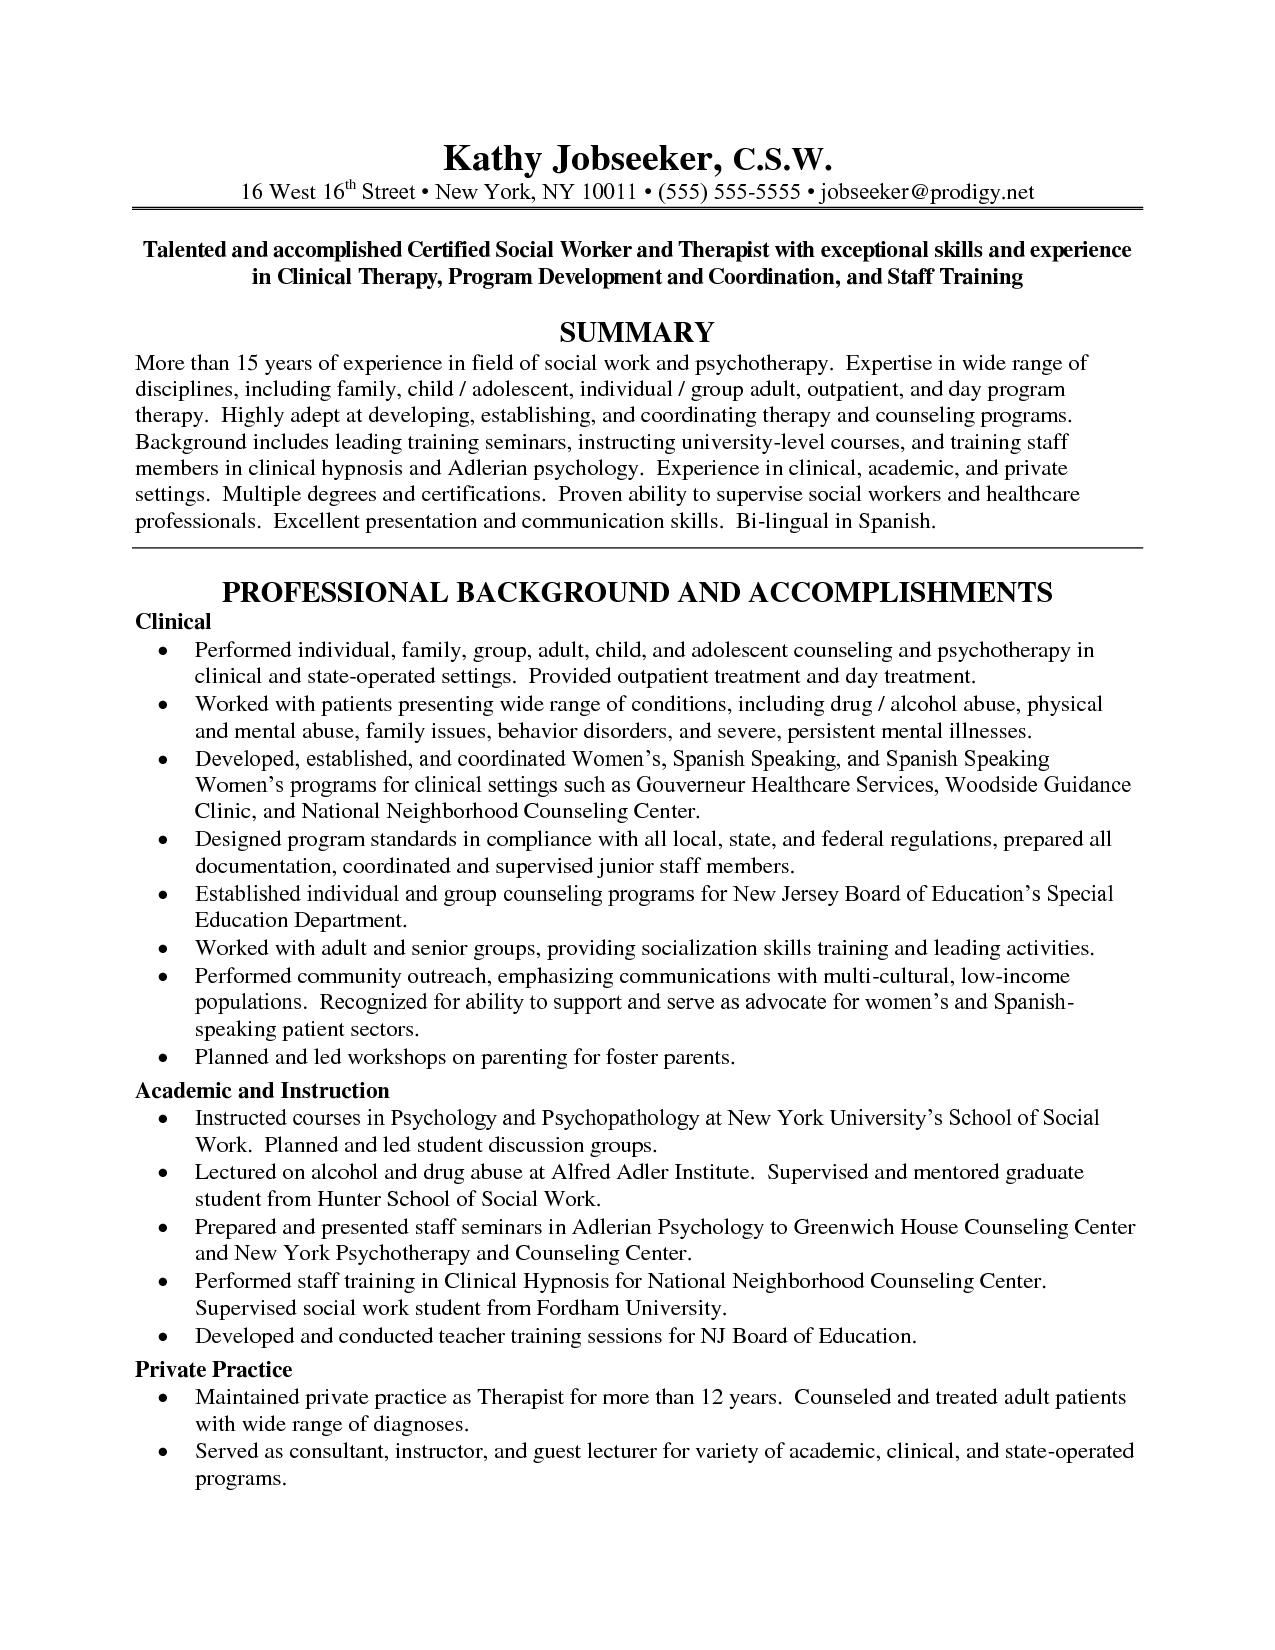 Work Resume Template Social Work Resume Examples Social Work Resume With License Social